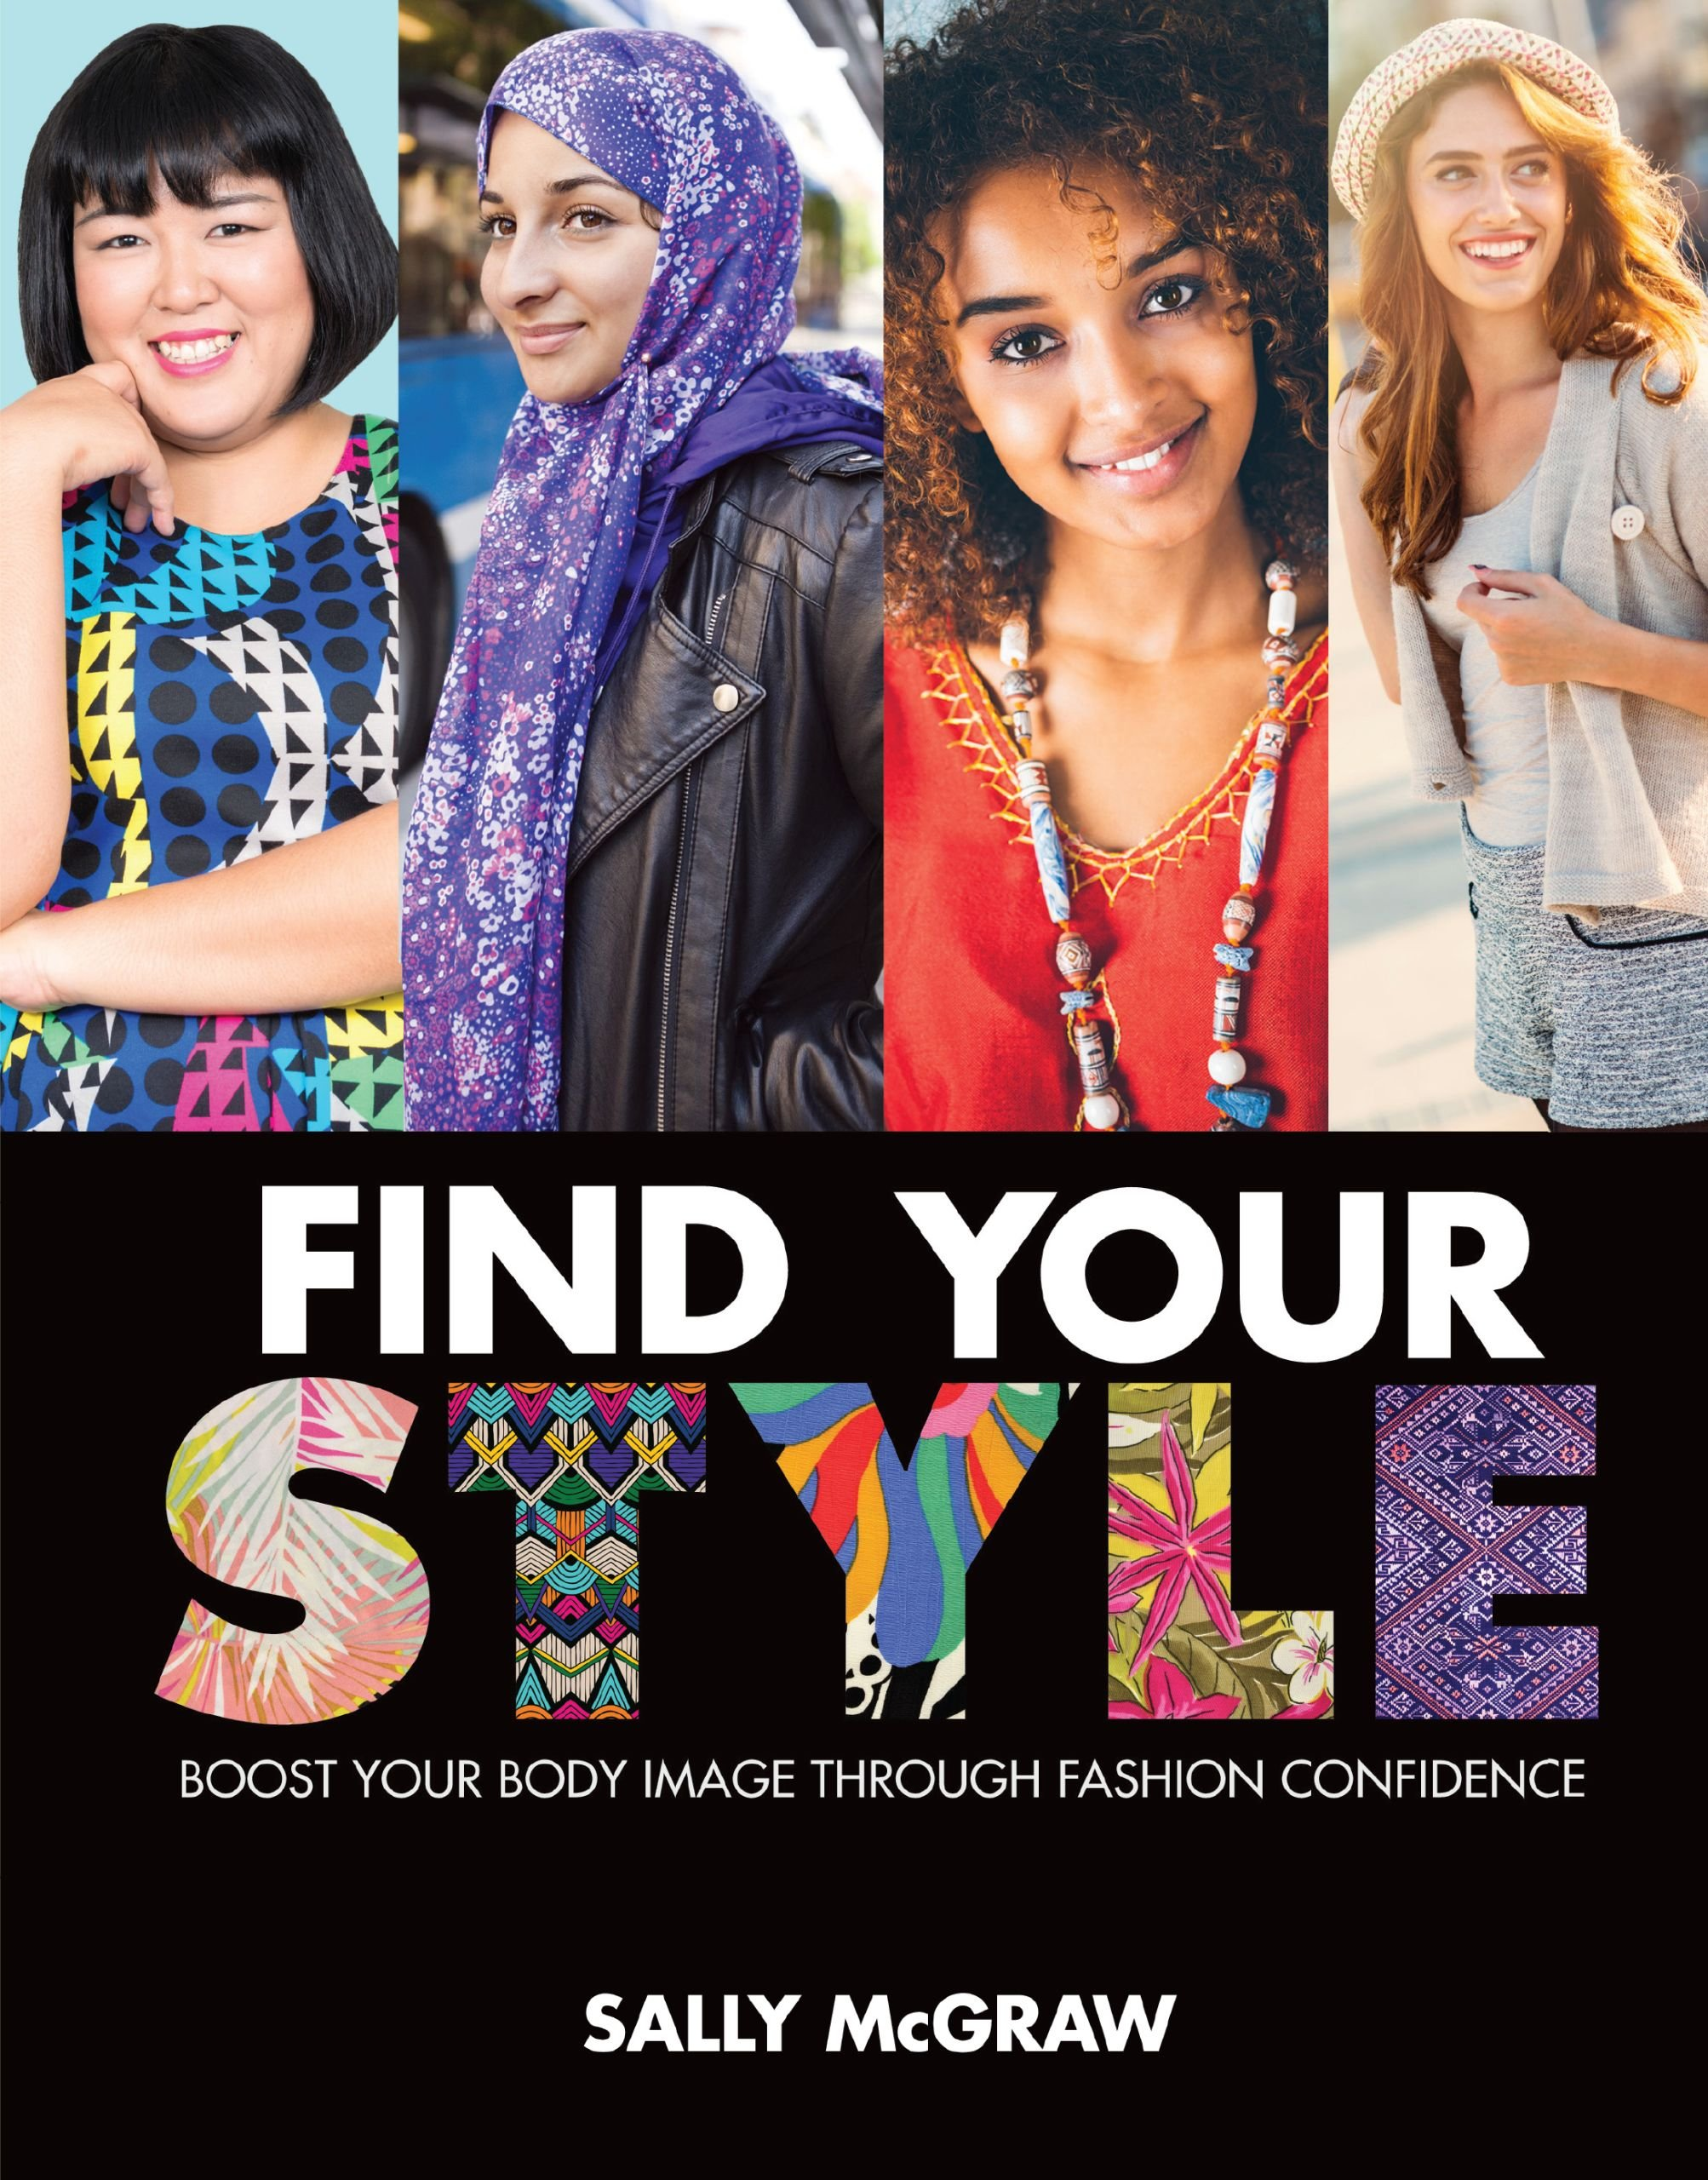 Find Your Style: Boost Your Body Image Through Fashion Confidence PDF